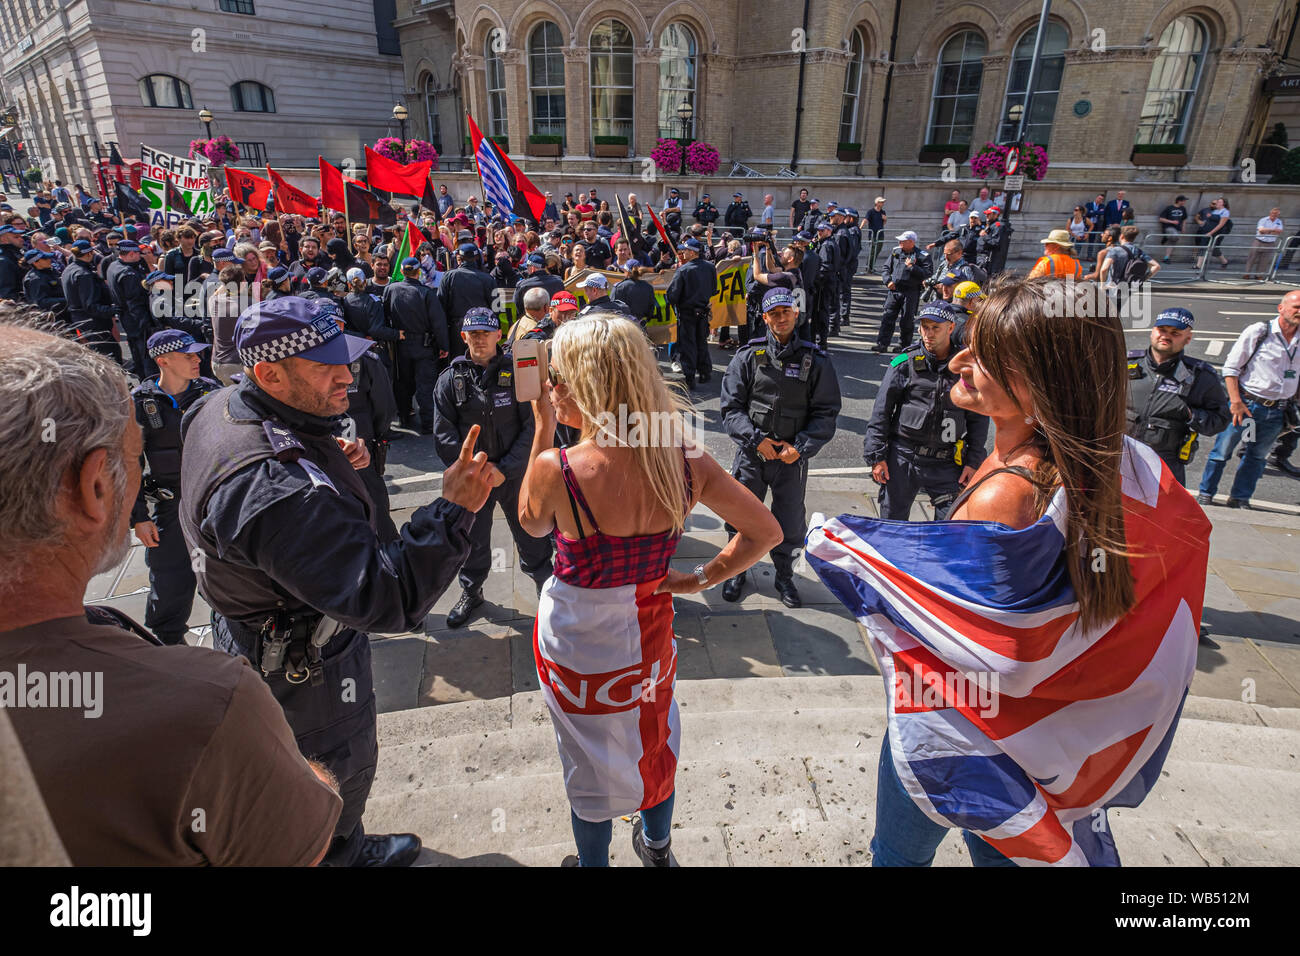 London, UK. 24th August 2019. A woman at the protest at the BBC by Tommy Robinson supporters is warned by the police for offensive language. The protesters claim he is in jail for journalism. He was sentenced to 9 months for 3 offences outside Leeds Crown Court which could have led to the collapse of a grooming gang trial, and has previous convictions for violence, financial and immigration frauds, drug possession and public order offences. Police kept the two groups apart. Robinson supporters were later joined by marchers from Trafalgar Square, and a larger group from Stand Up to Racism came Stock Photo